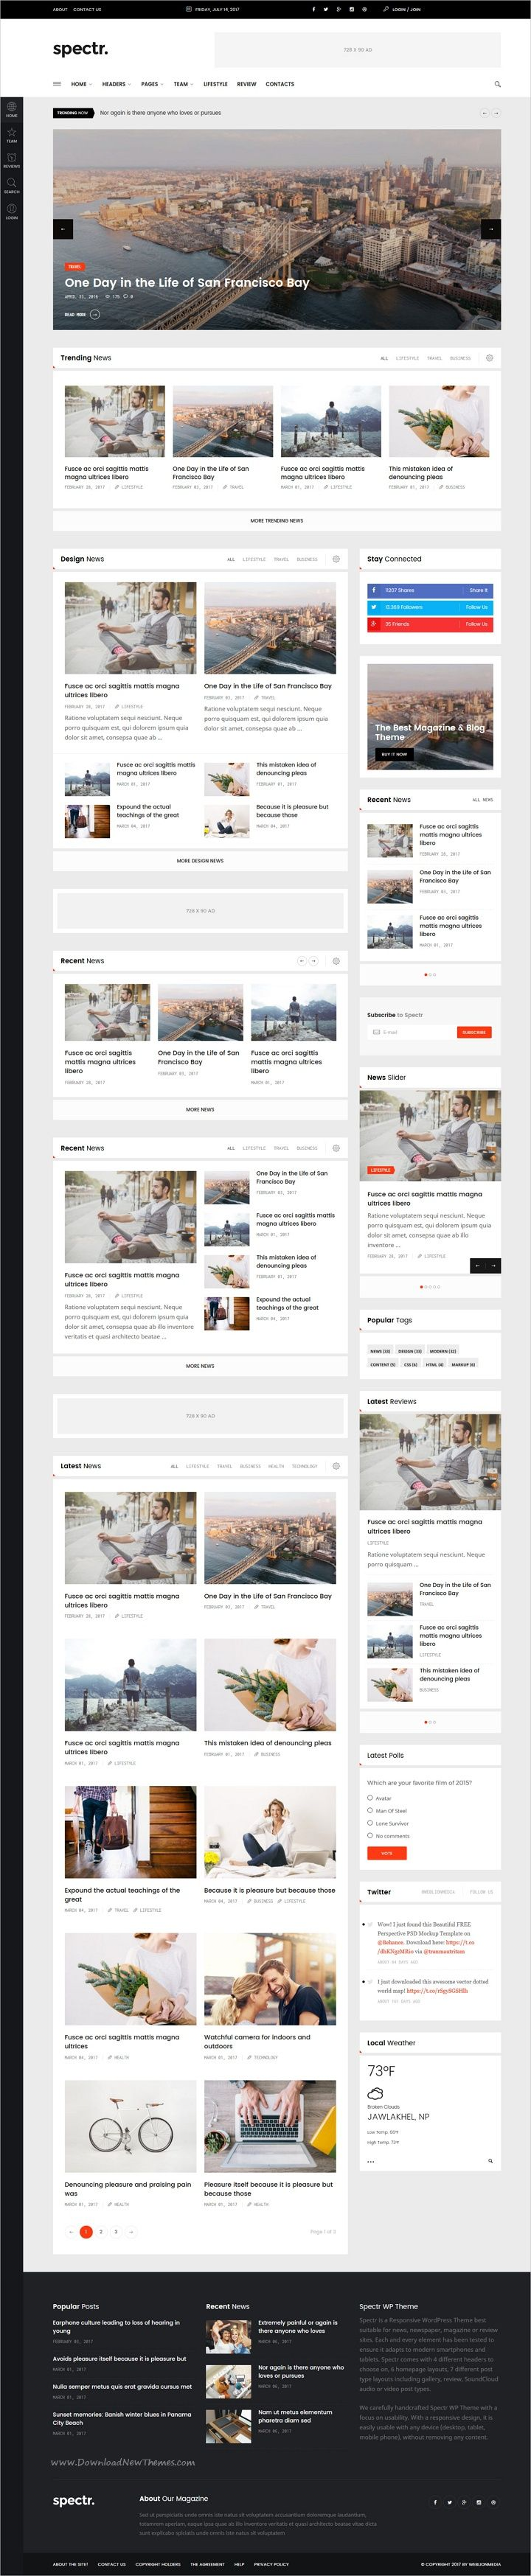 Spectr is modern and creative design 6in1 responsive #WordPress theme for #news, #magazine and blogs website download now > https://themeforest.net/item/spectr-responsive-news-and-magazine-wordpress-theme/19559306?ref=Datasata